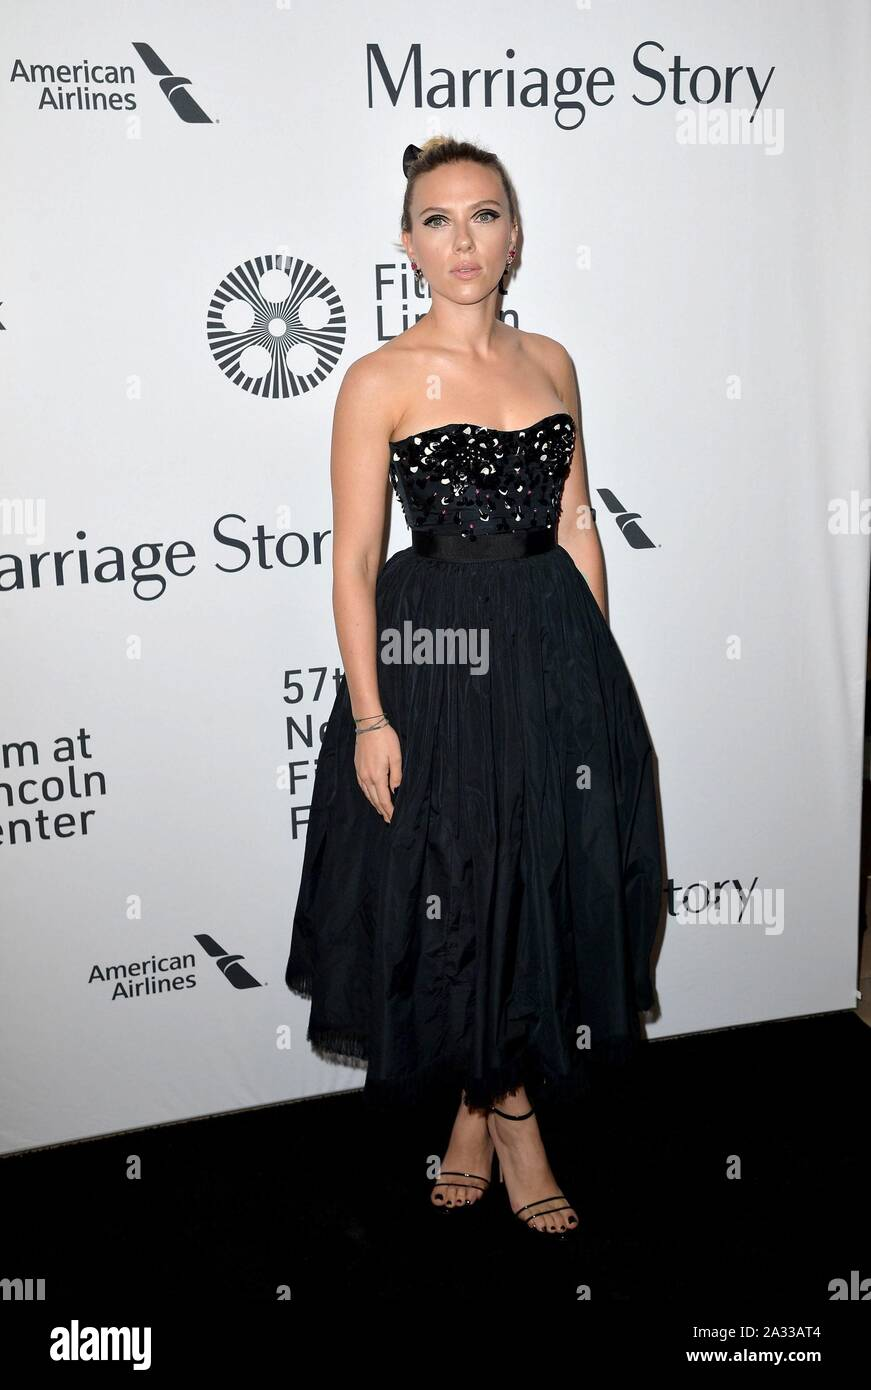 New York Usa 04th Oct 2019 Scarlett Johansson At Arrivals For Marriage Story Premiere At New York Film Festival Nyff Alice Tully Hall At Lincoln Center New York Ny October 4 2019